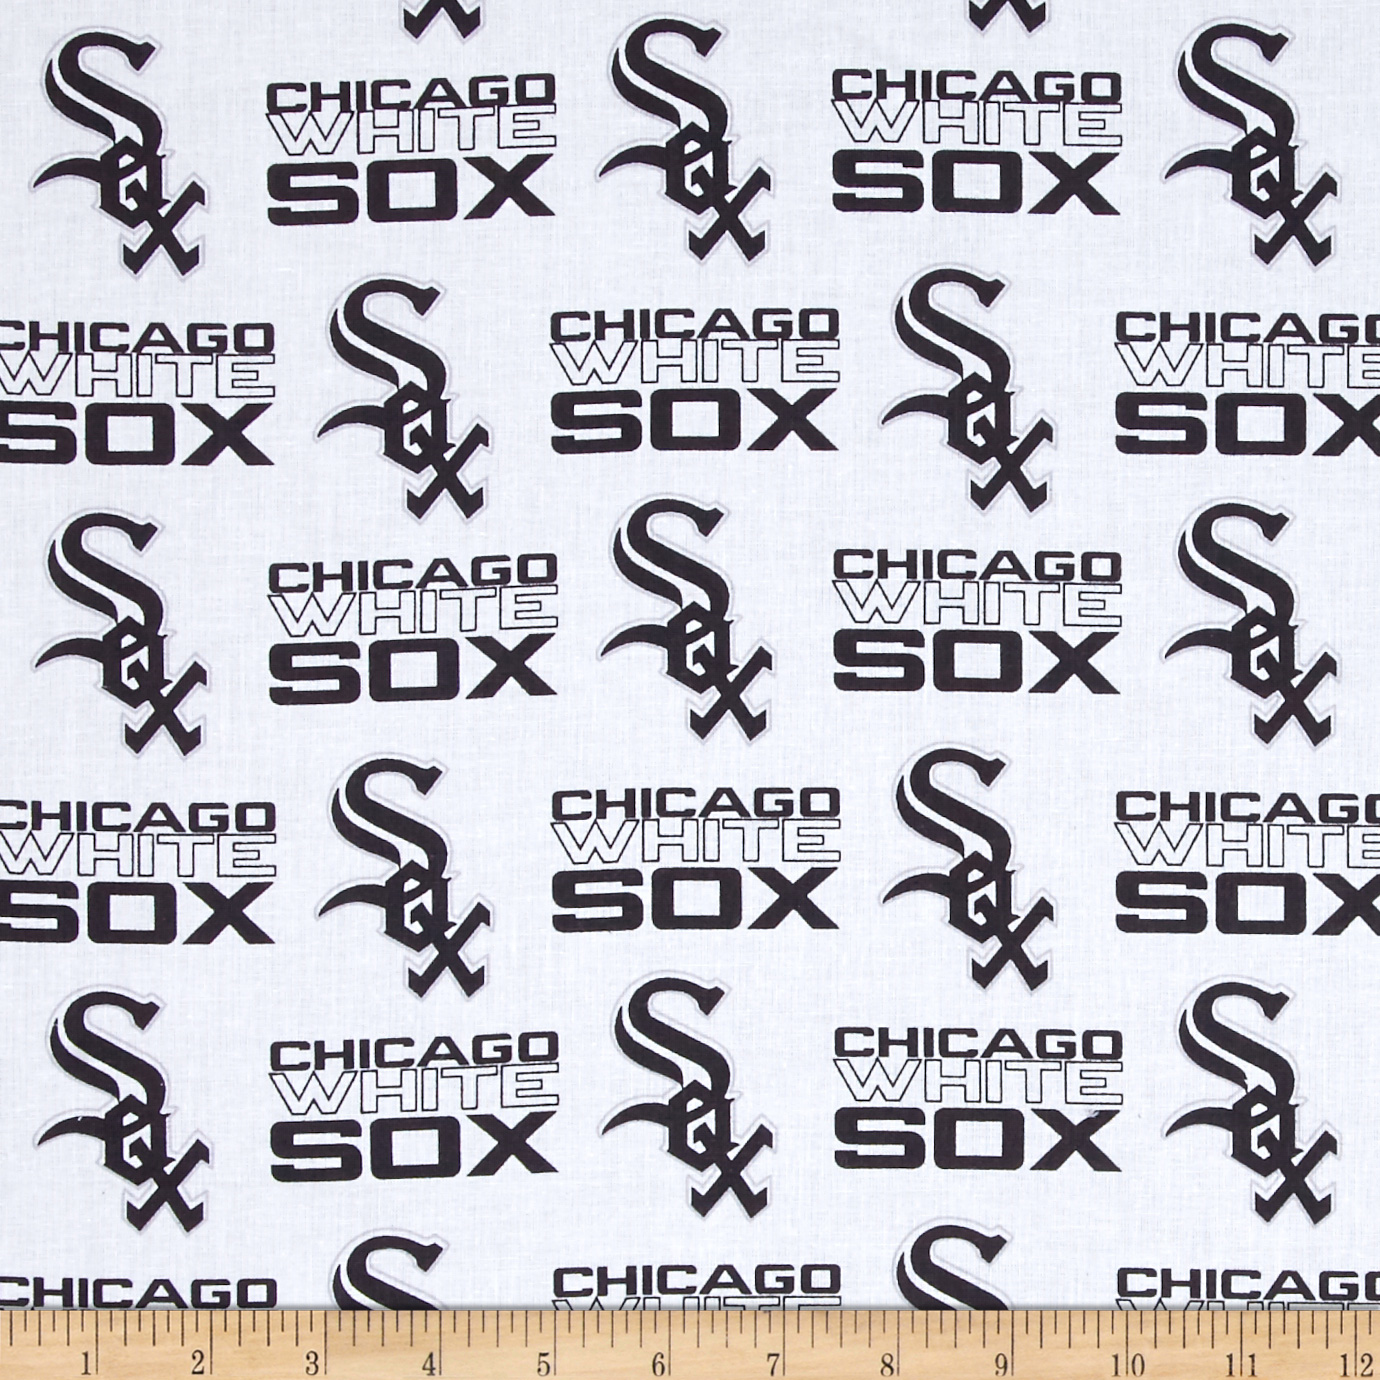 MLB Cotton Broadcloth Chicago White Sox Black/White Fabric by Fabric Traditions in USA